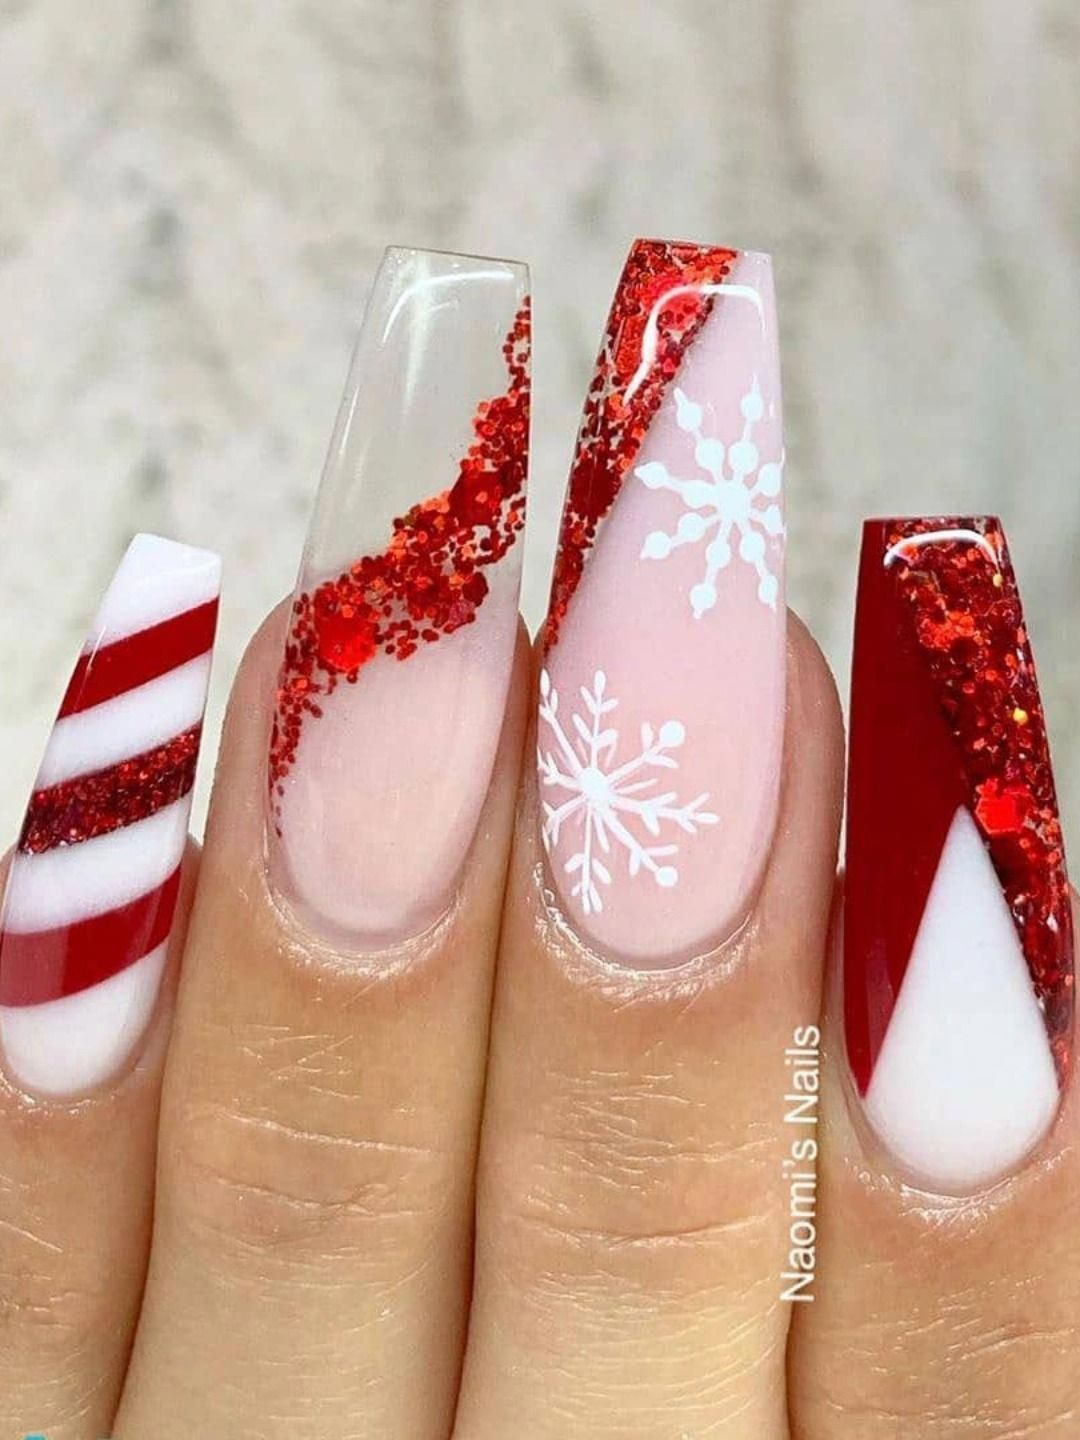 Amazing Red Christmas Acrylic Nails Coffin Shaped Design Consists Of Candy Cane Mode 2020 In 2020 Christmas Nails Acrylic Christmas Nail Designs Red Christmas Nails